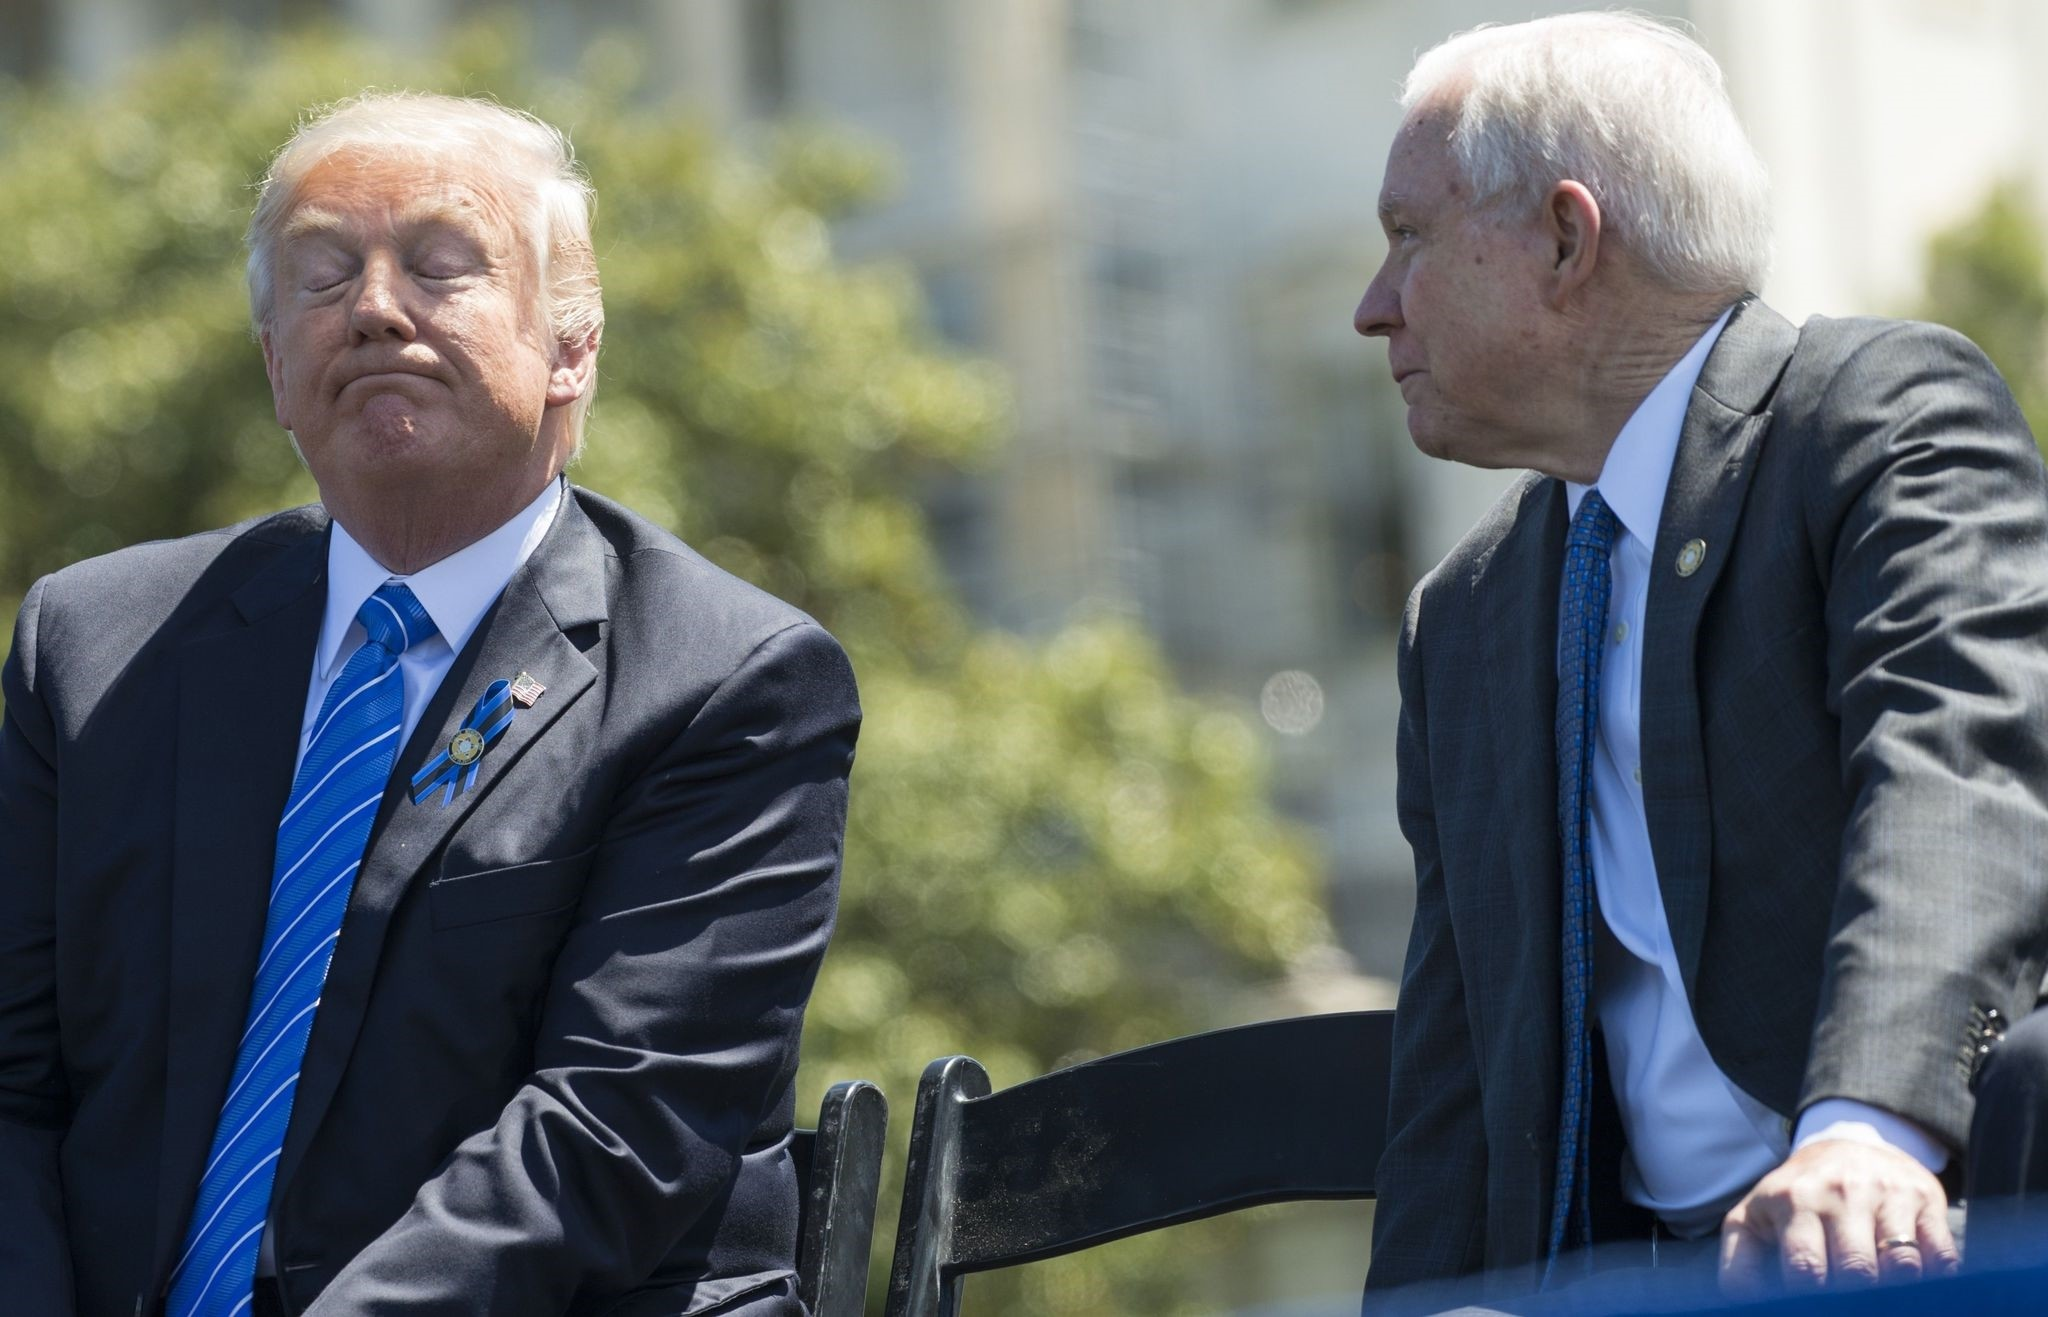 File photo taken on May 15, 2017 shows US President Donald Trump with Attorney General Jeff Sessions (R) during the 36th Annual National Peace Officersu2019 Memorial Service. (AFP Photo)